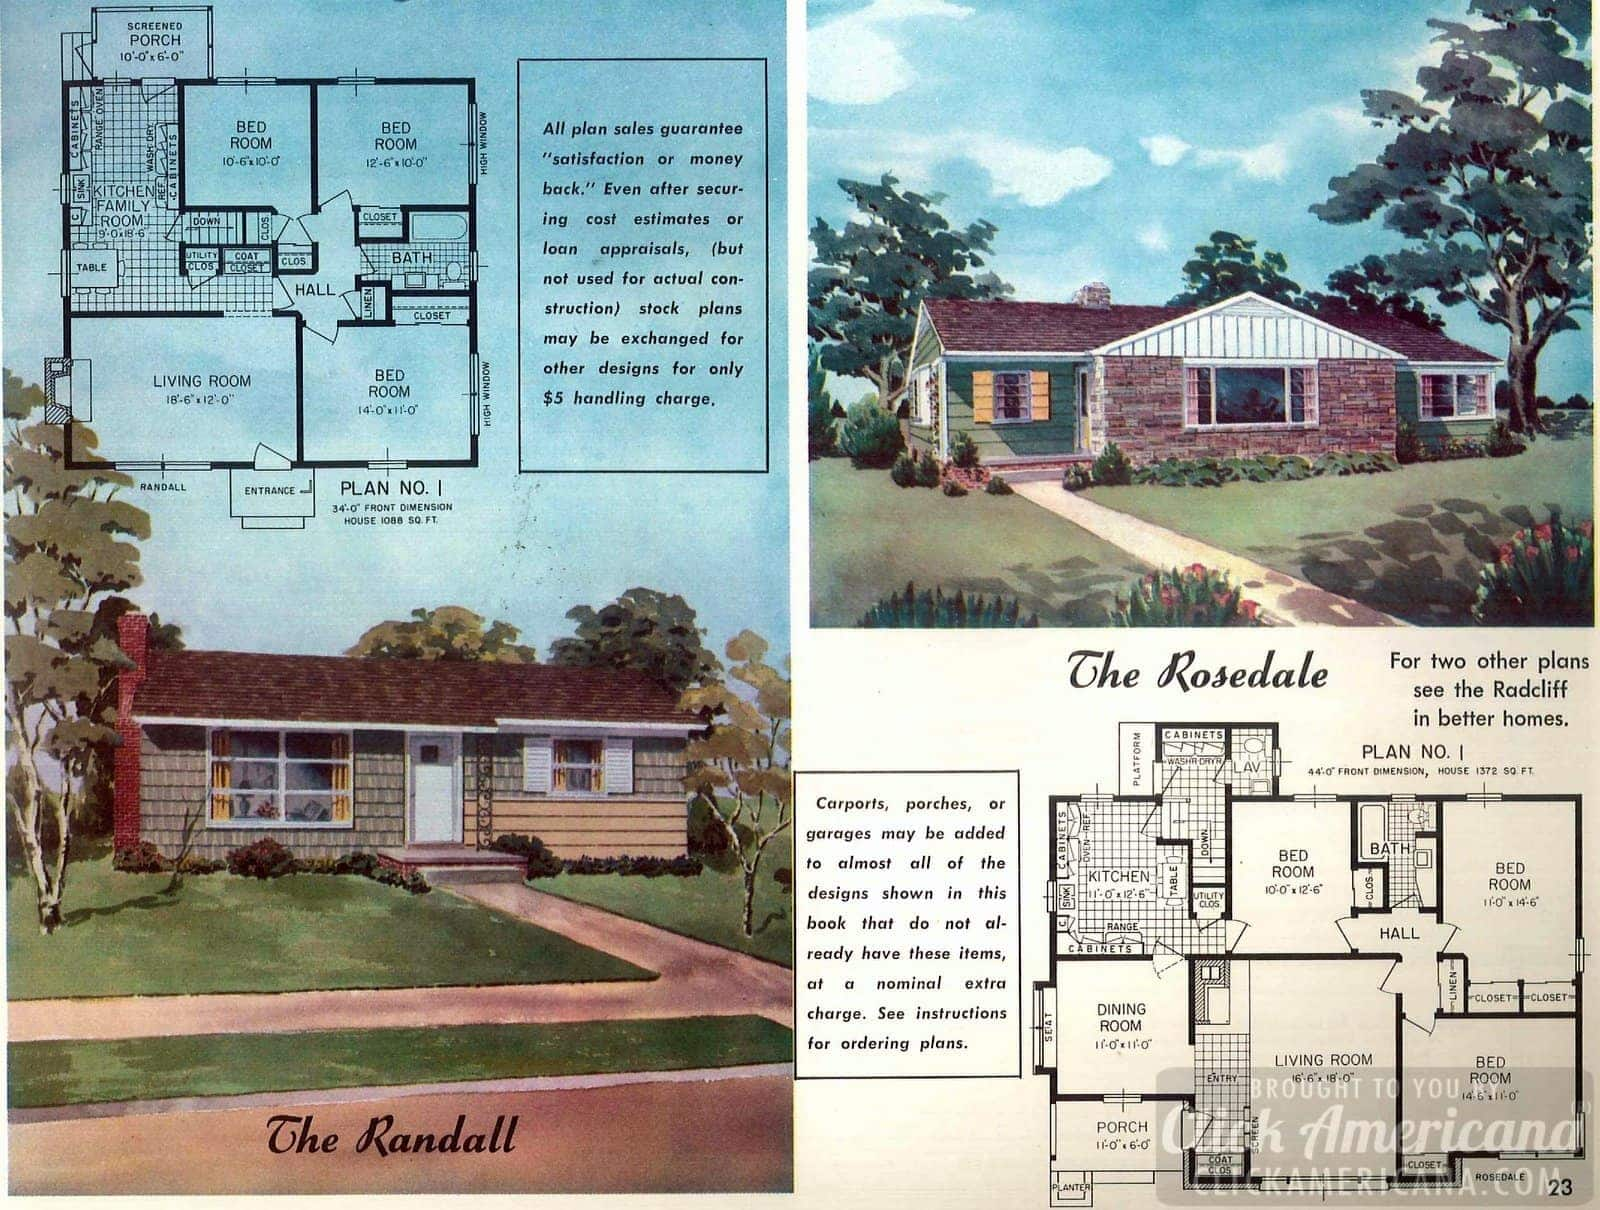 The Randall & The Rosedale: Home plans from 1958